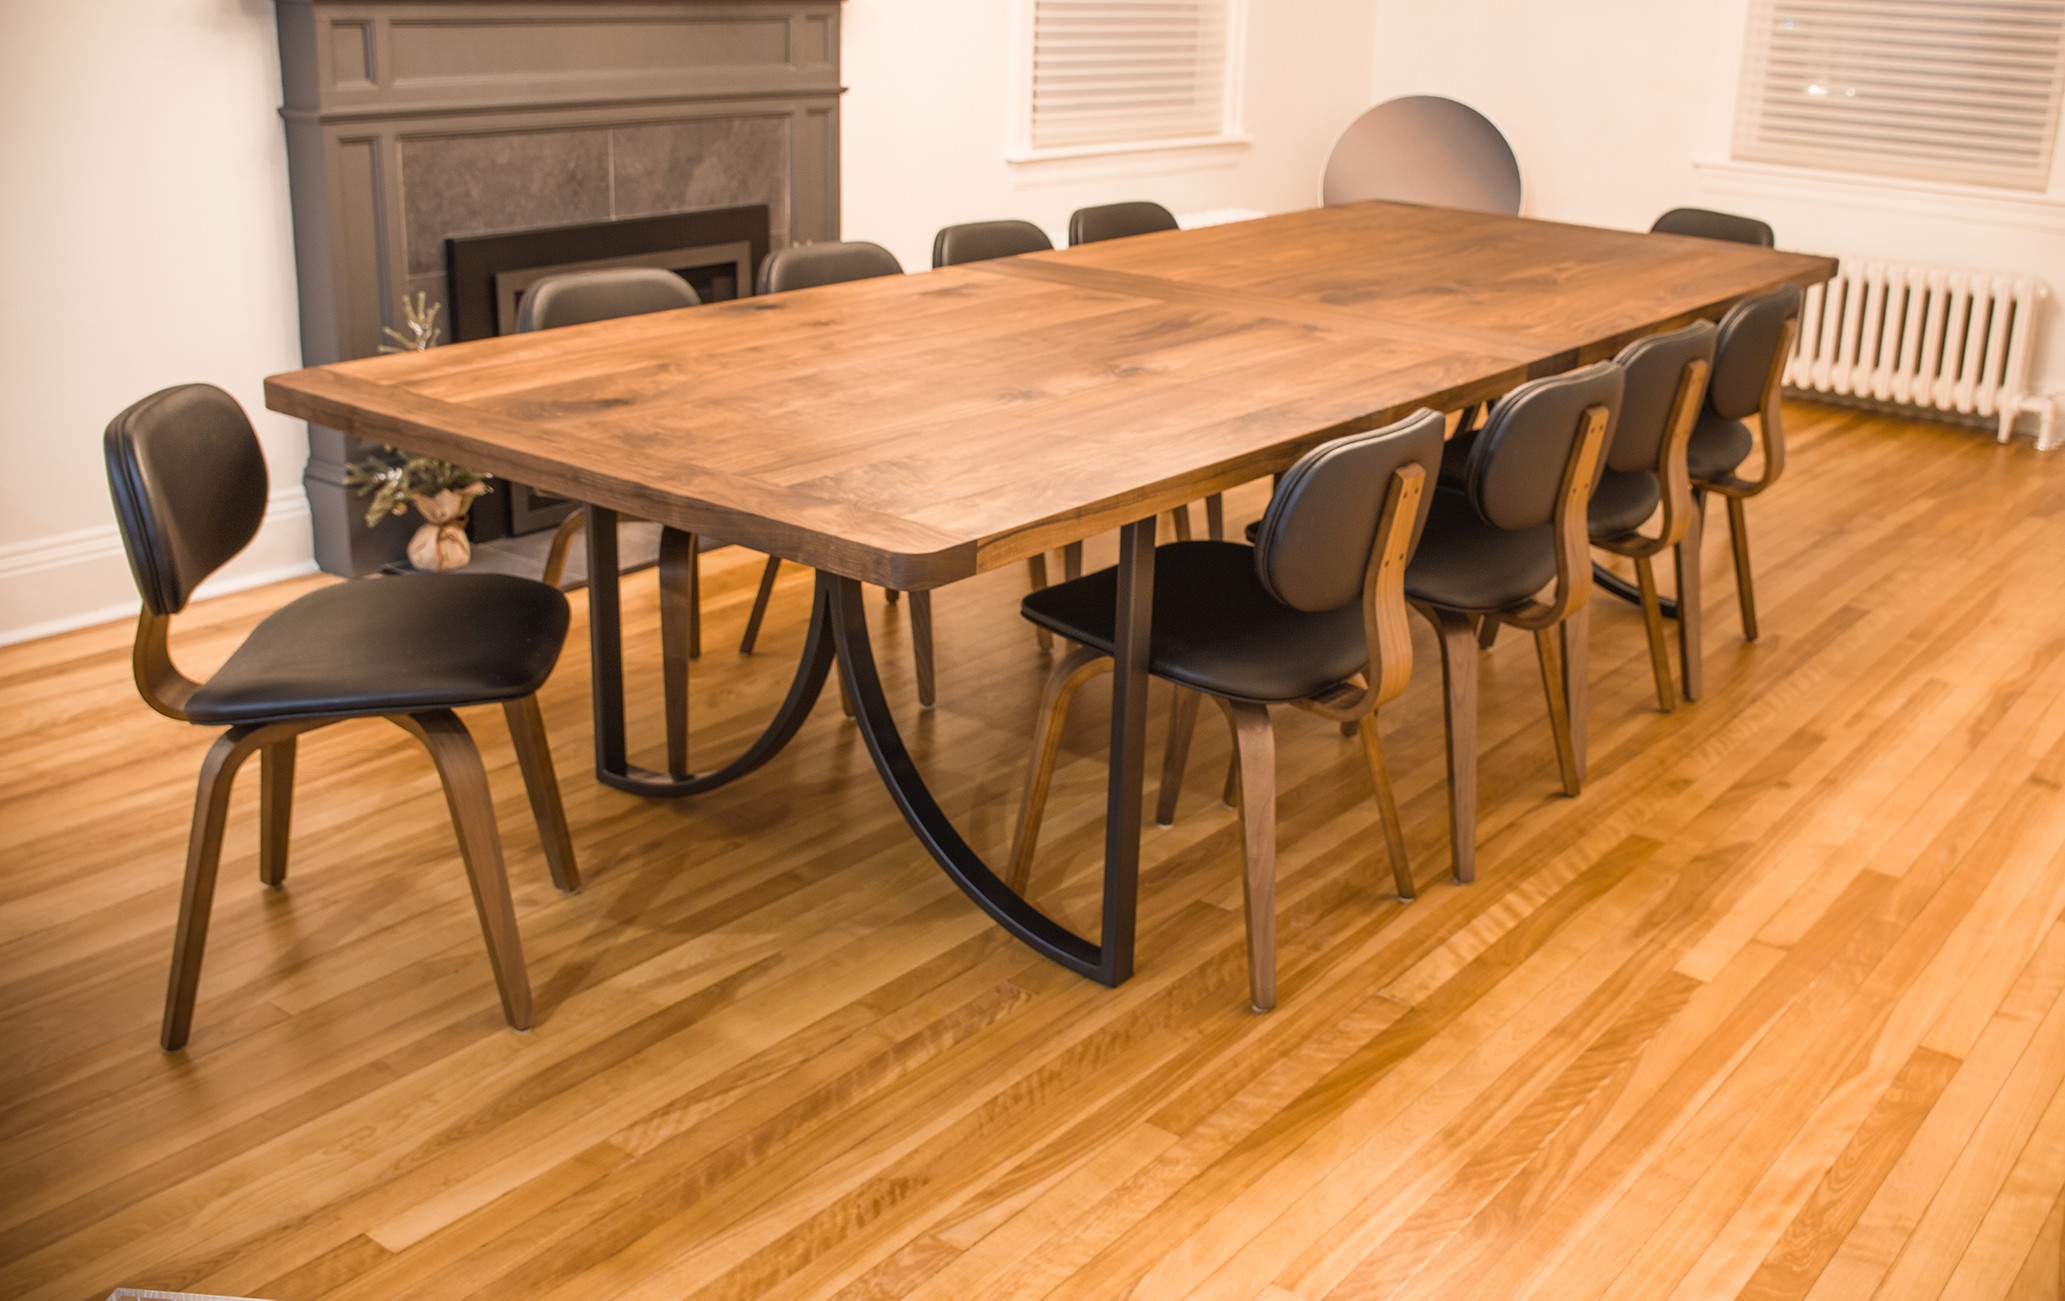 10' Walnut Dining Table